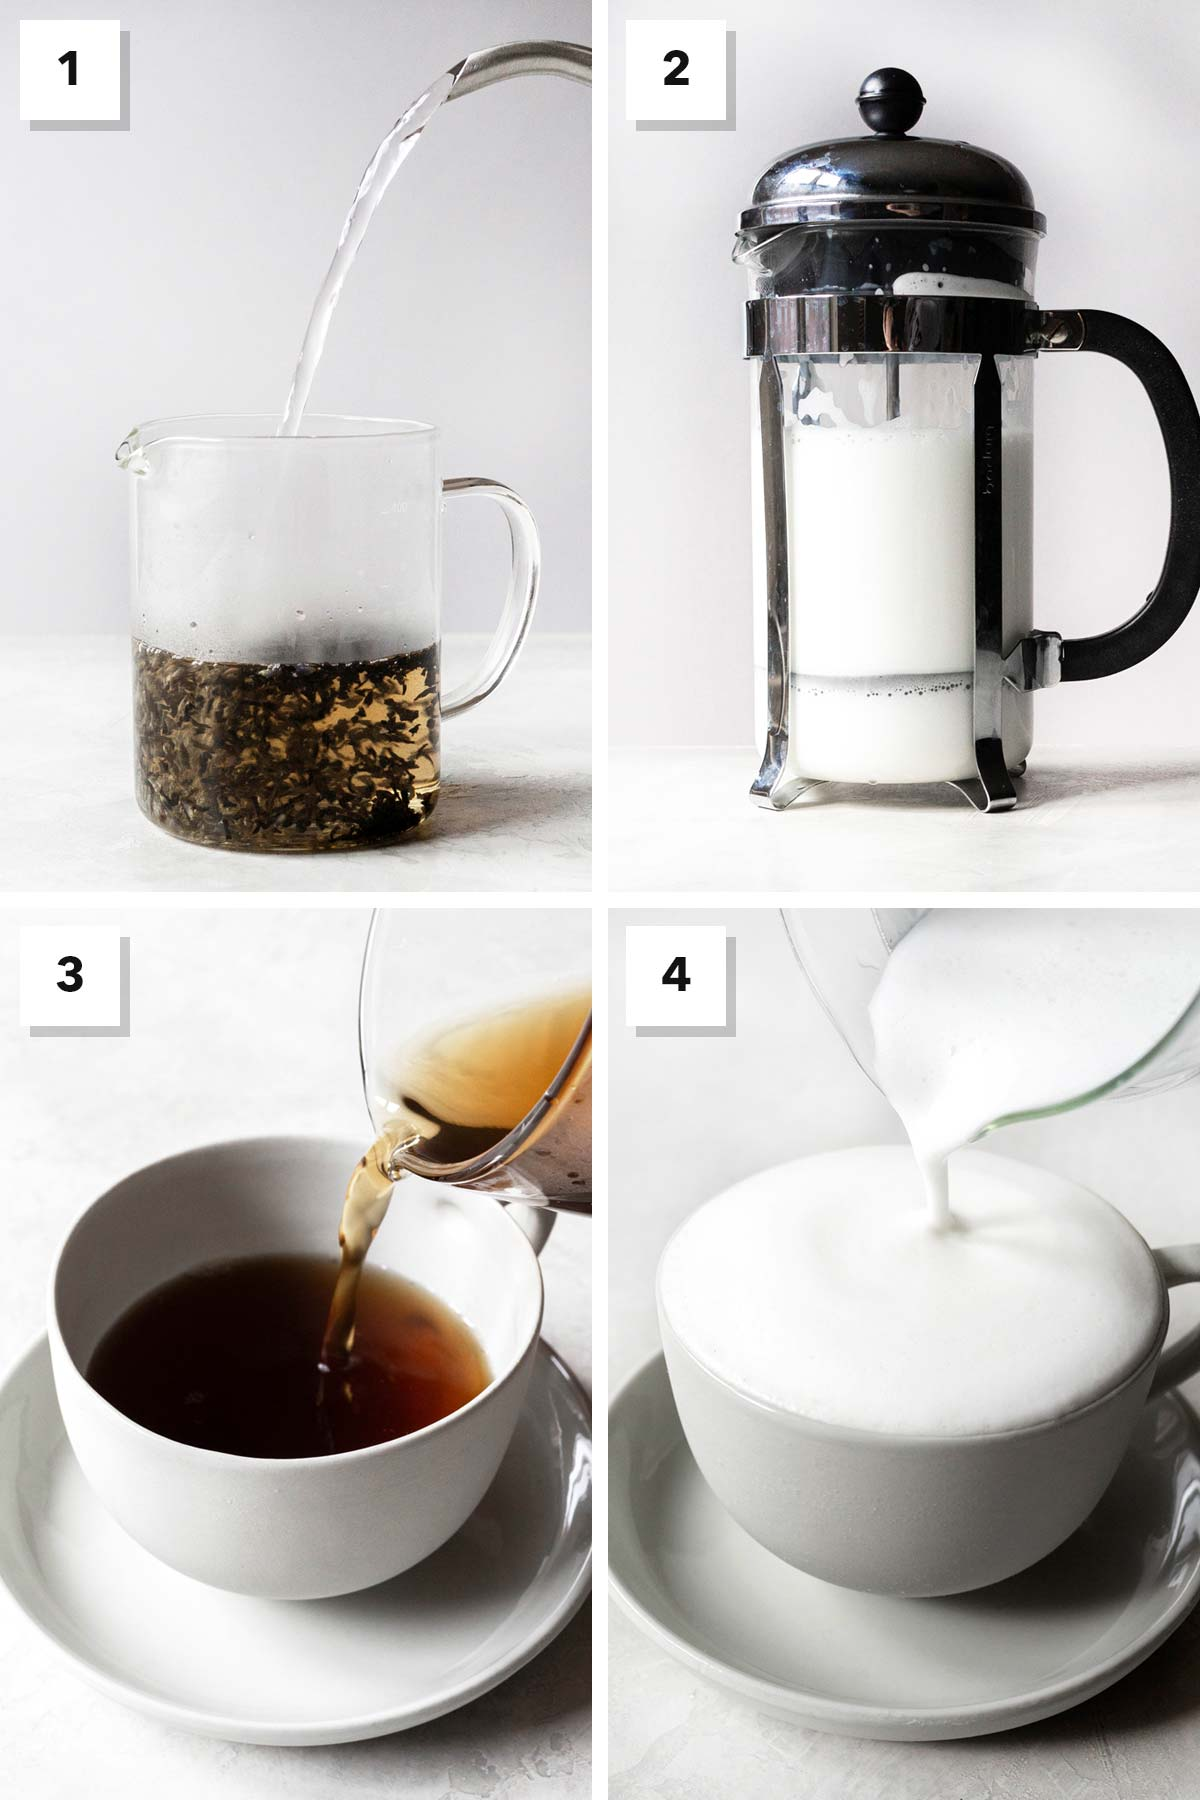 Four photo collage showing steps to make an Earl Grey tea latte.